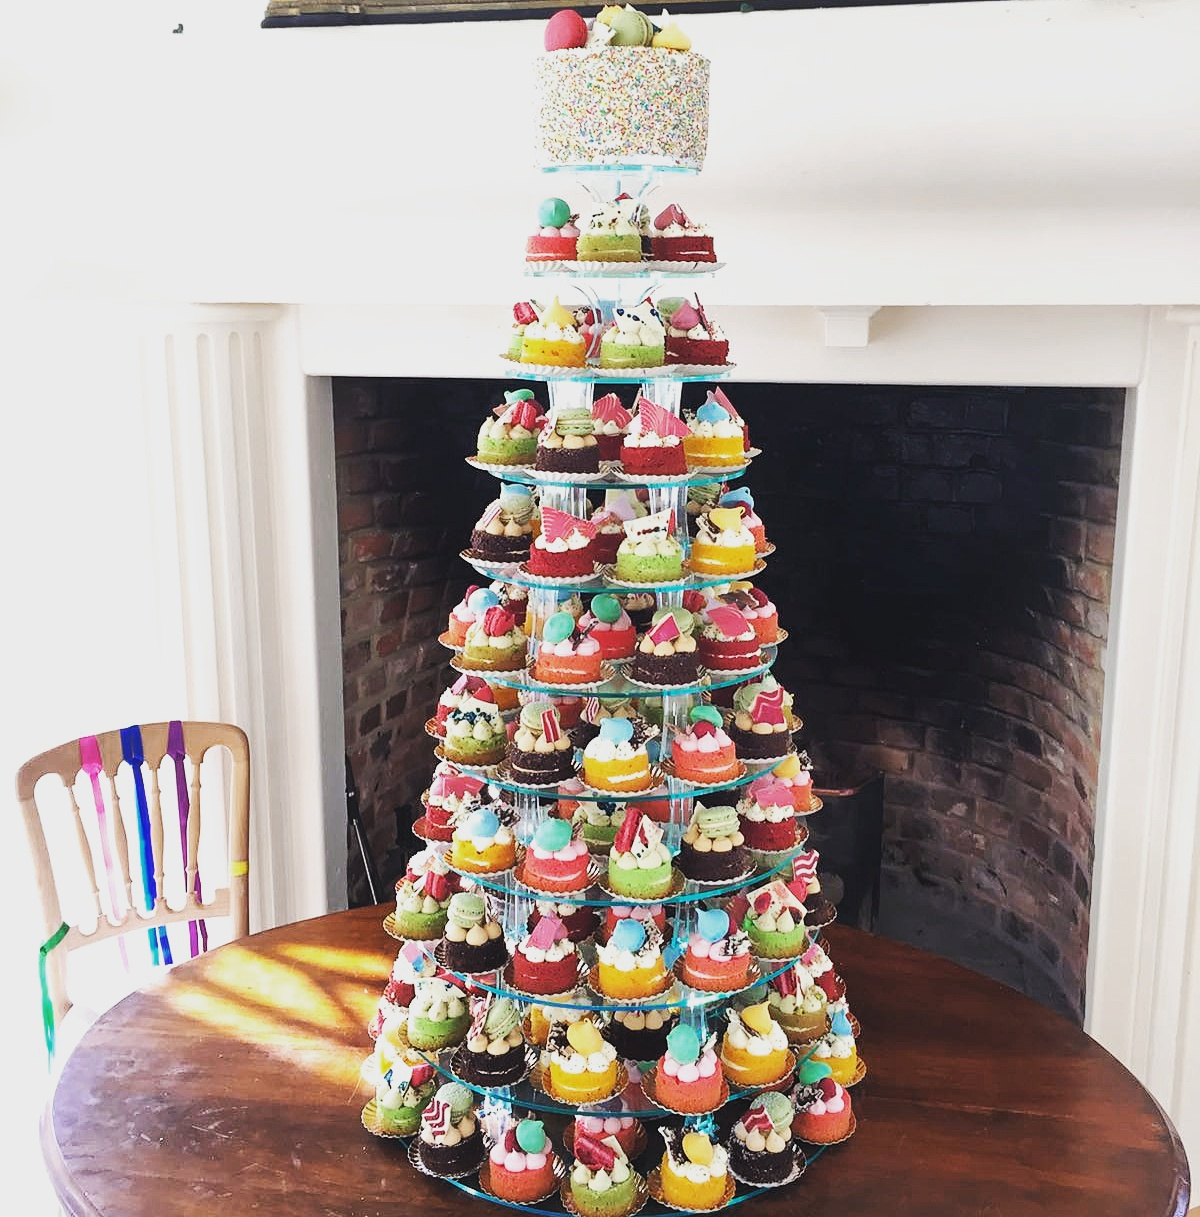 Colourful tea party tower - individual miniature filled and decorated cakes